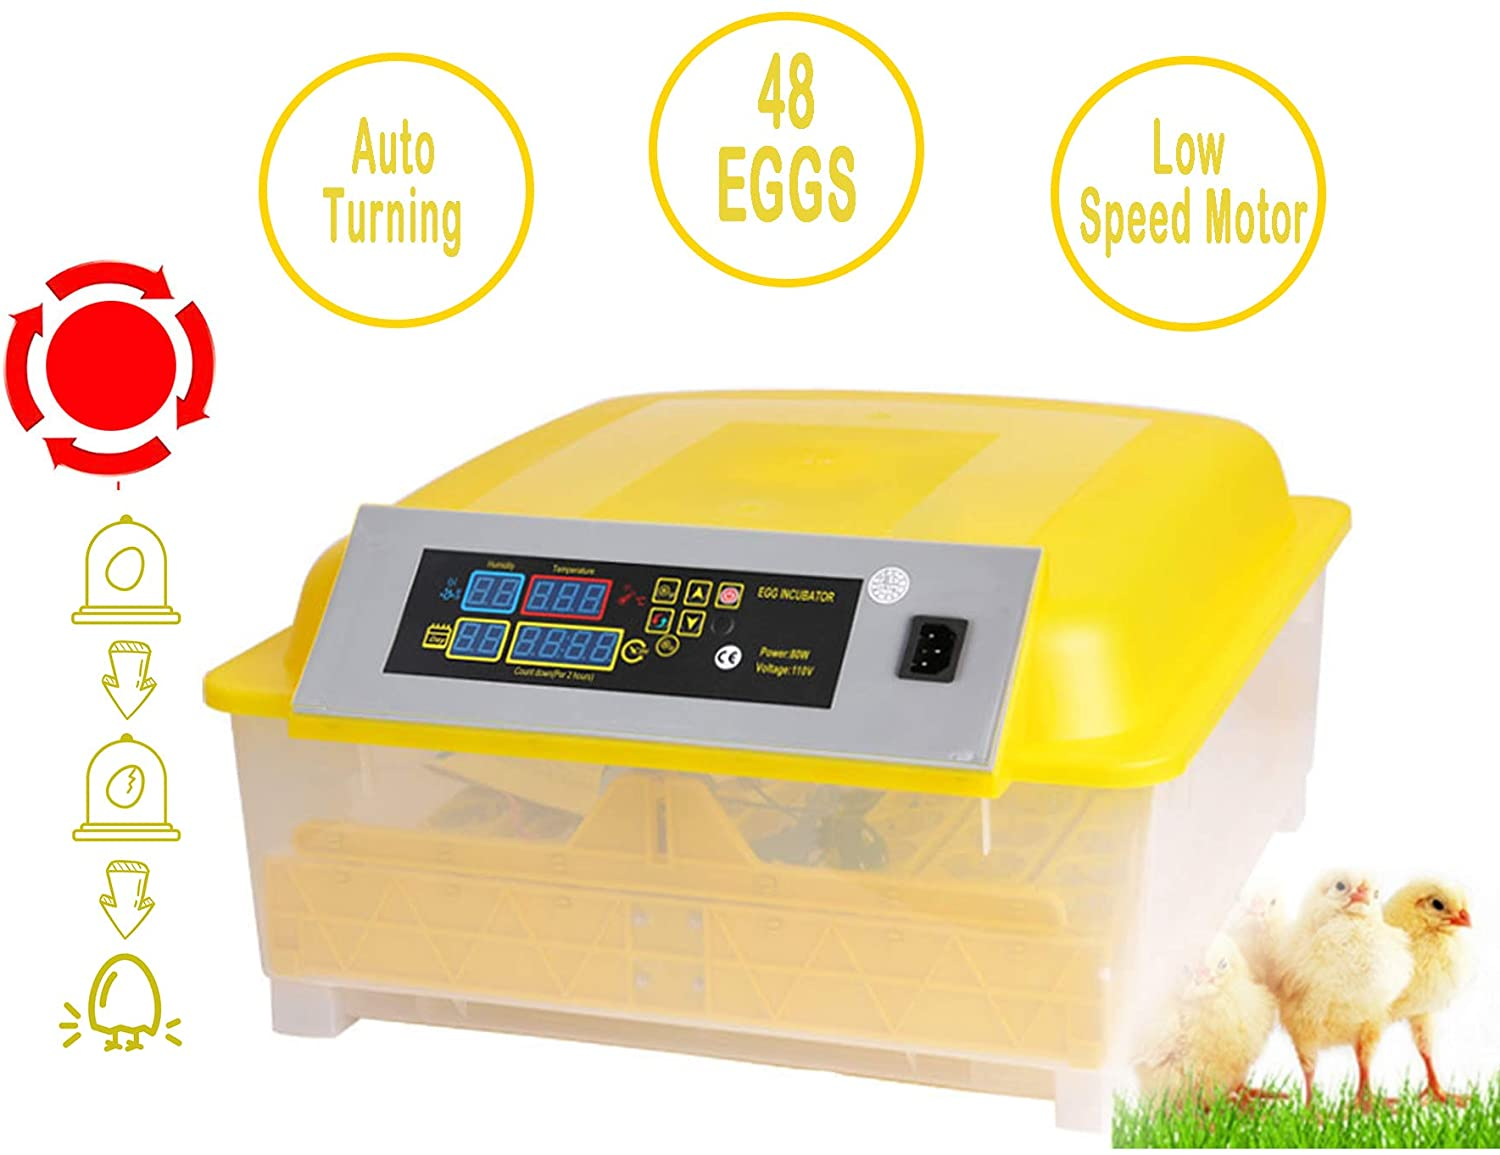 Moroly 48 Eggs Incubator Automatic Digital Hatching for Chicken Duck Goose Egg Hatcher US Stock 48 Egg